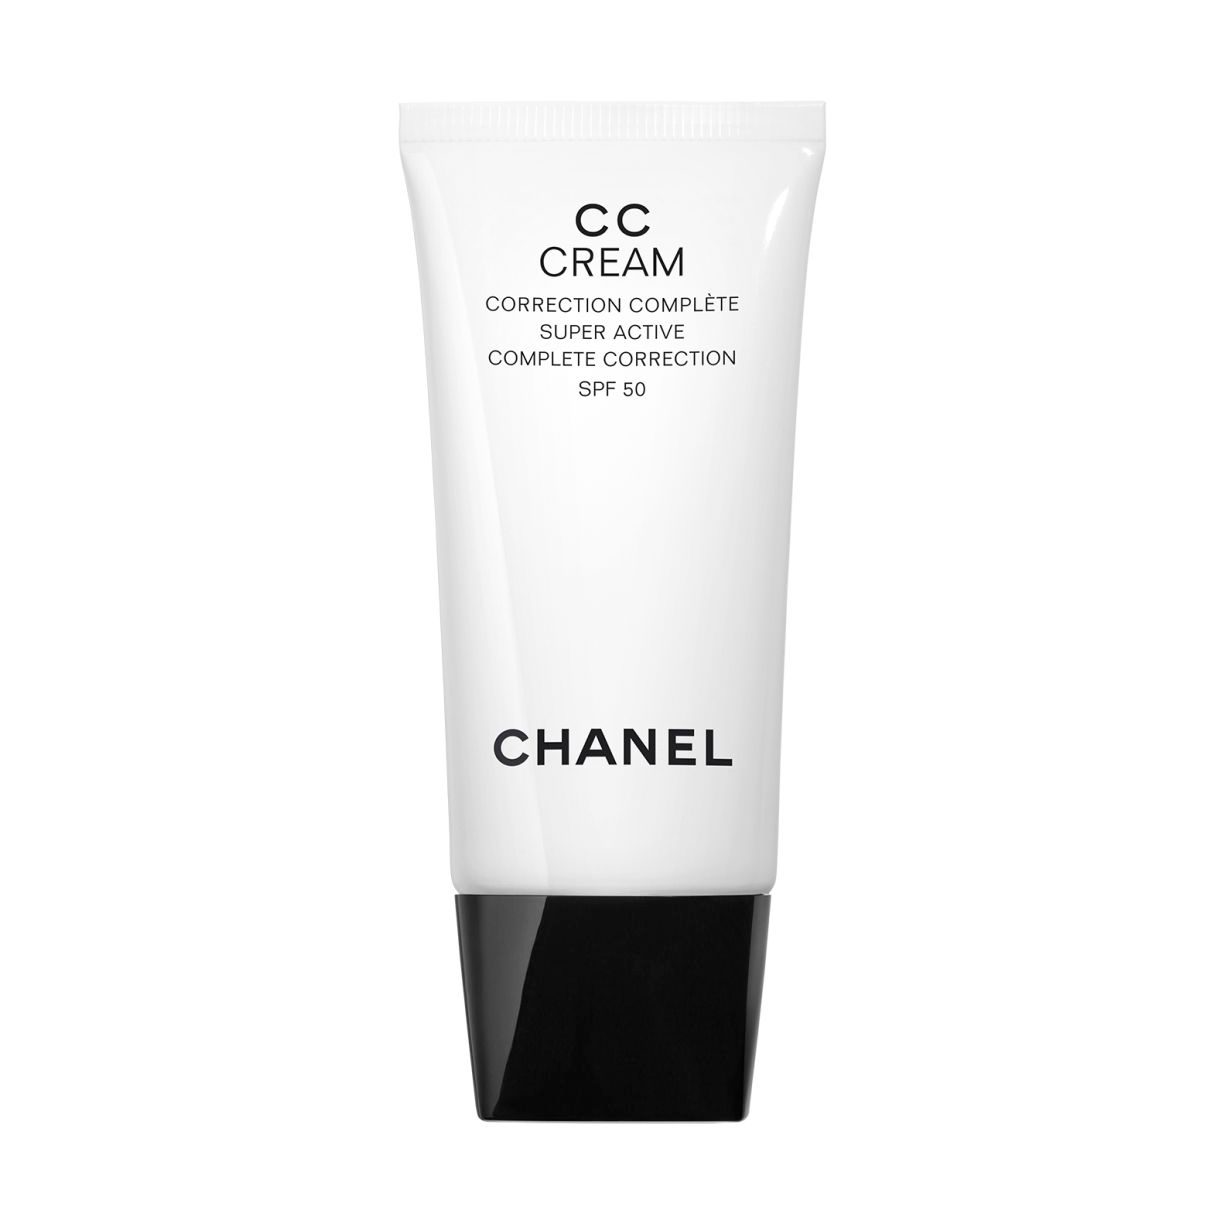 CC CREAM CORRECTION COMPLÈTE SUPER ACTIVE SPF 50 10 - BEIGE